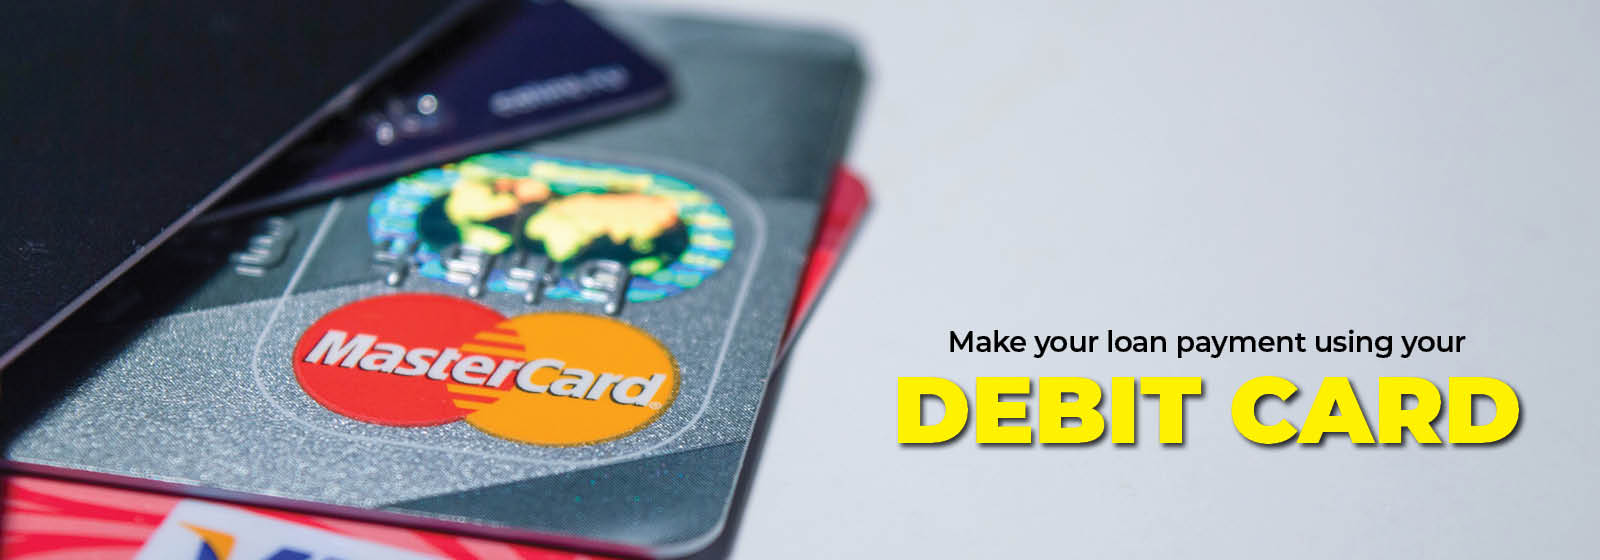 Debit card payments image slide